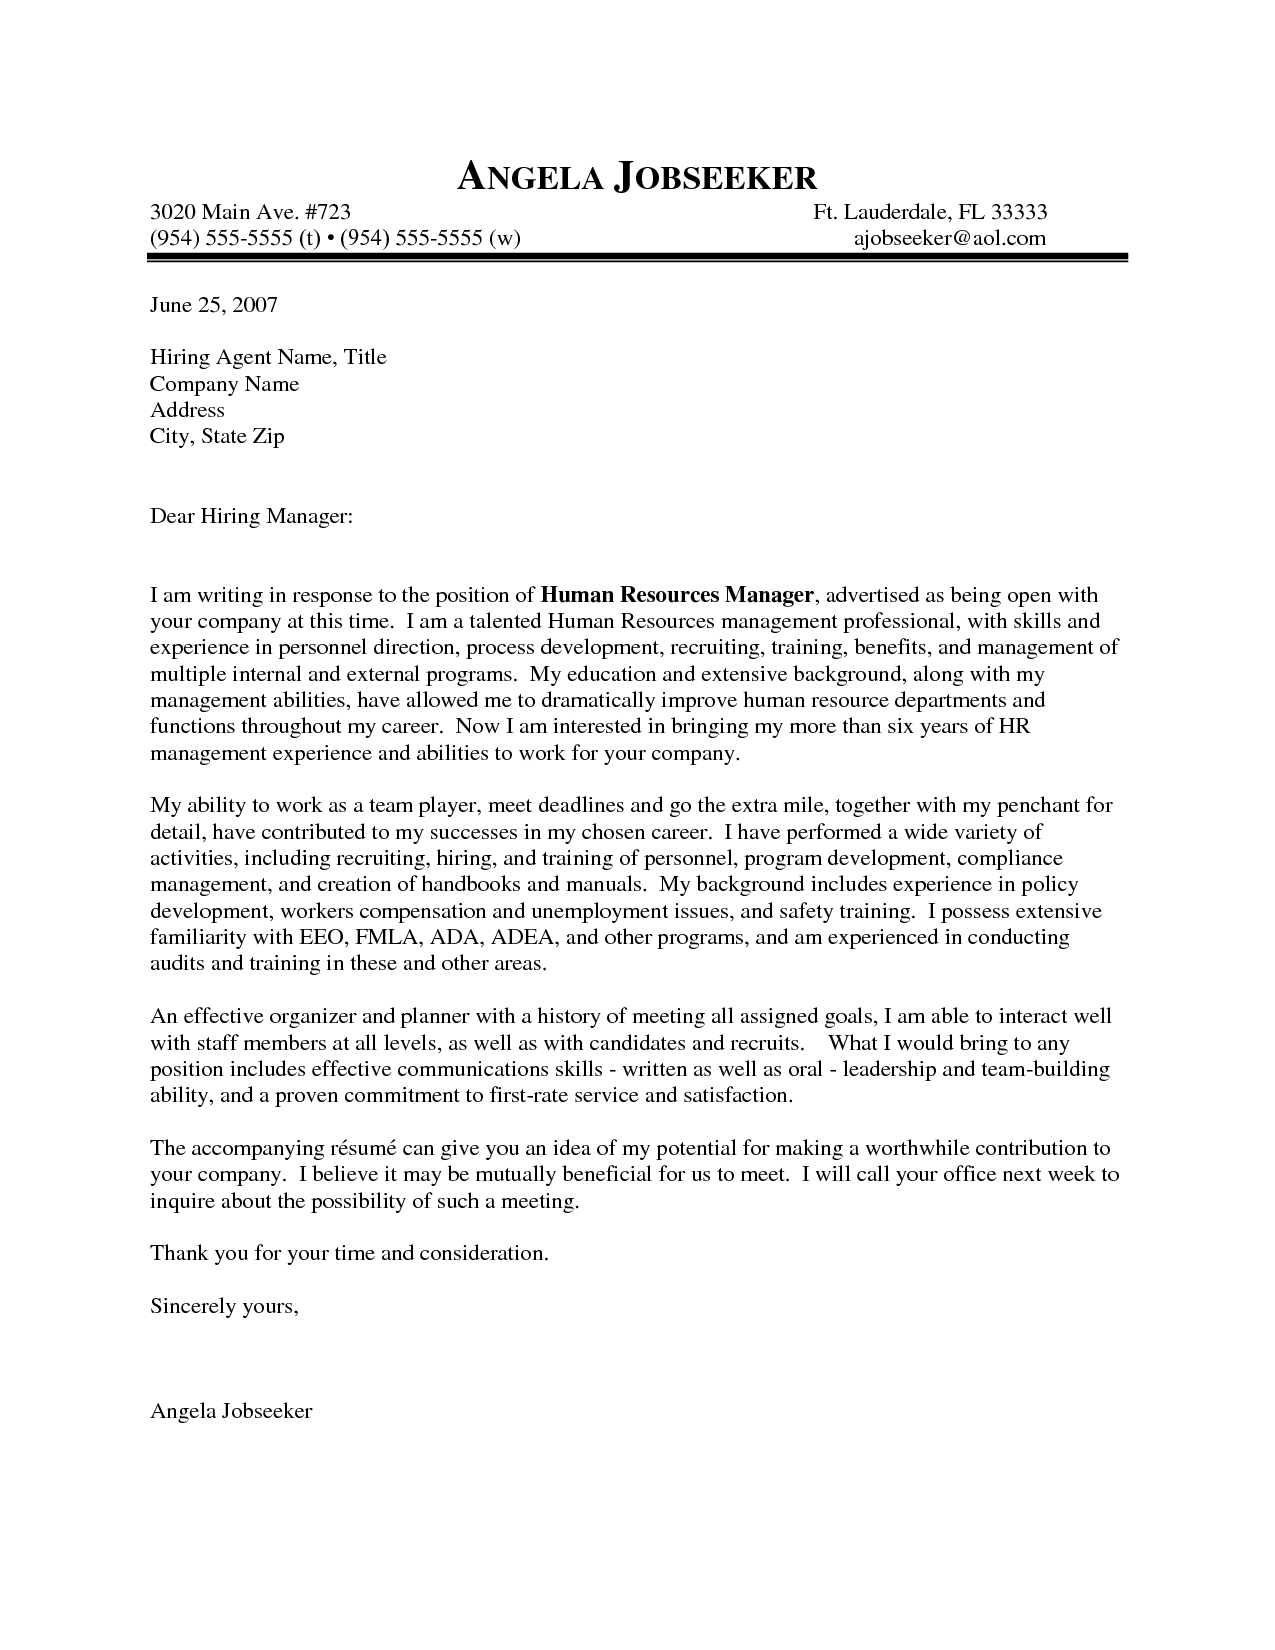 High Quality Outstanding Cover Letter Examples | HR Manager Cover Letter Example And Cover Resume Letter Examples